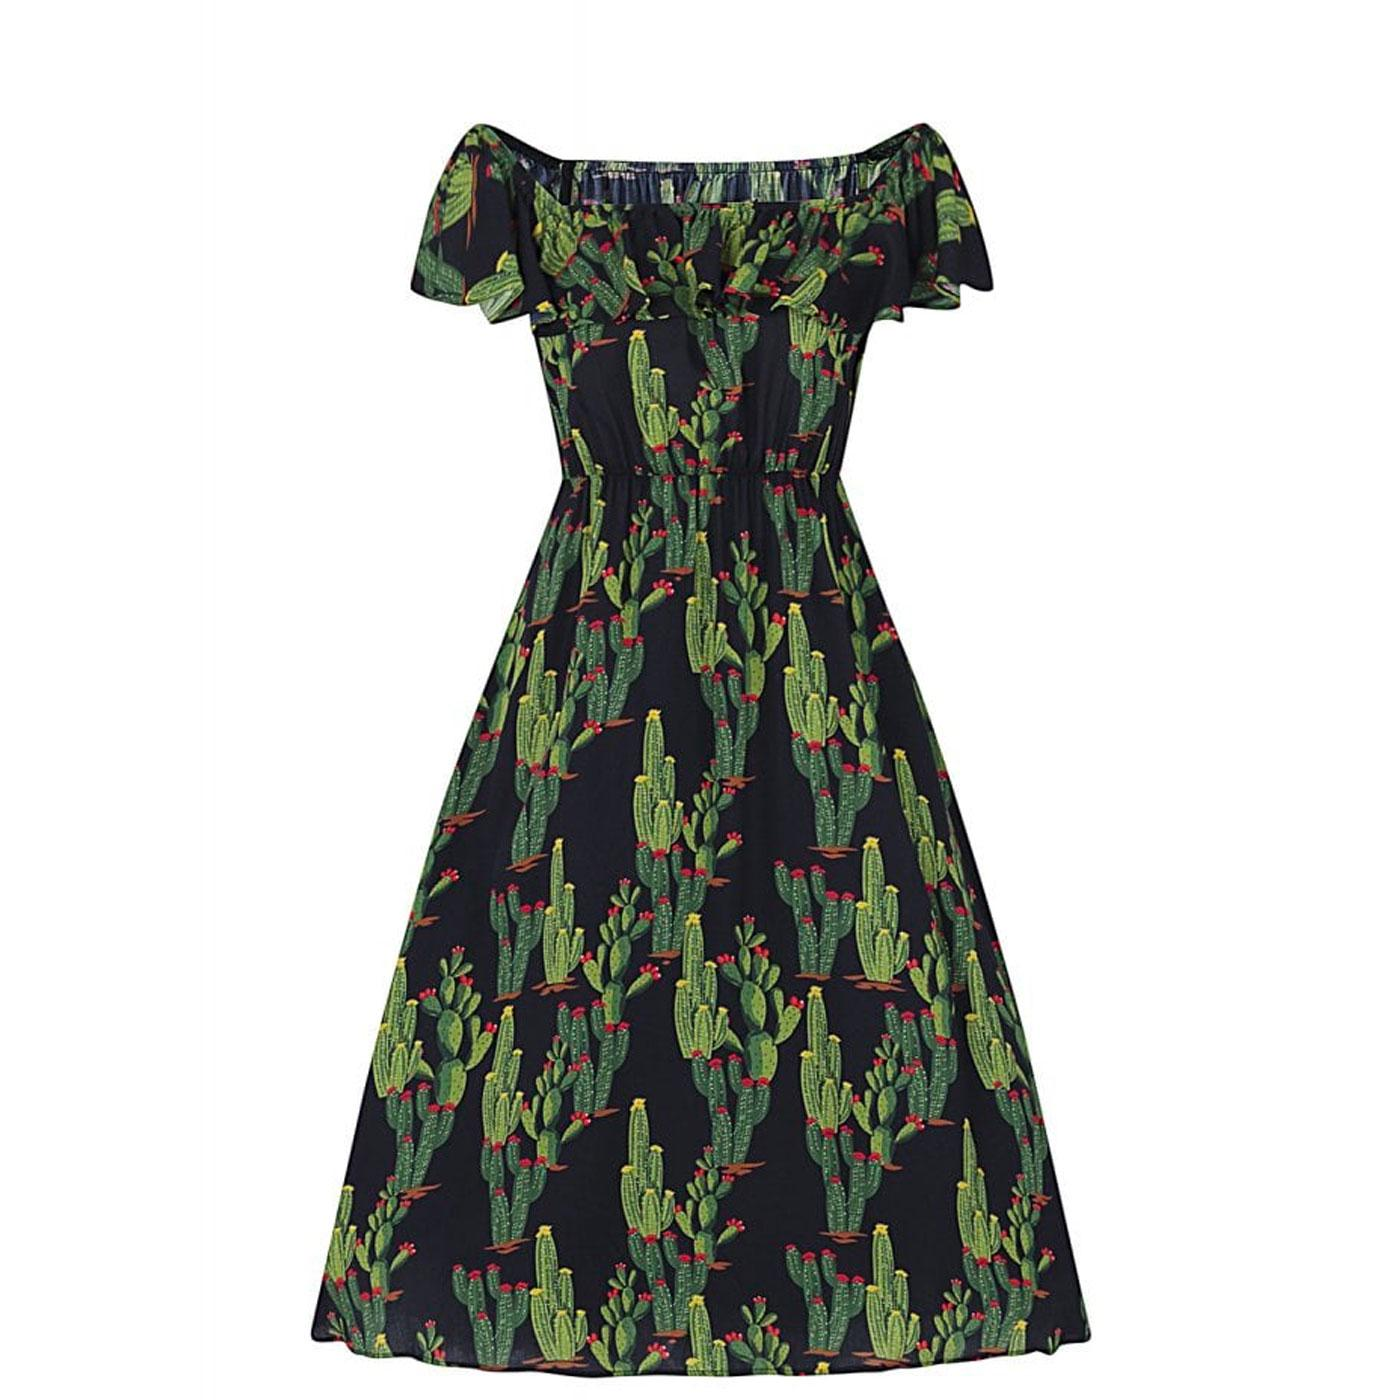 Ronda COLLECTIF Vintage Cactus Print Swing Dress